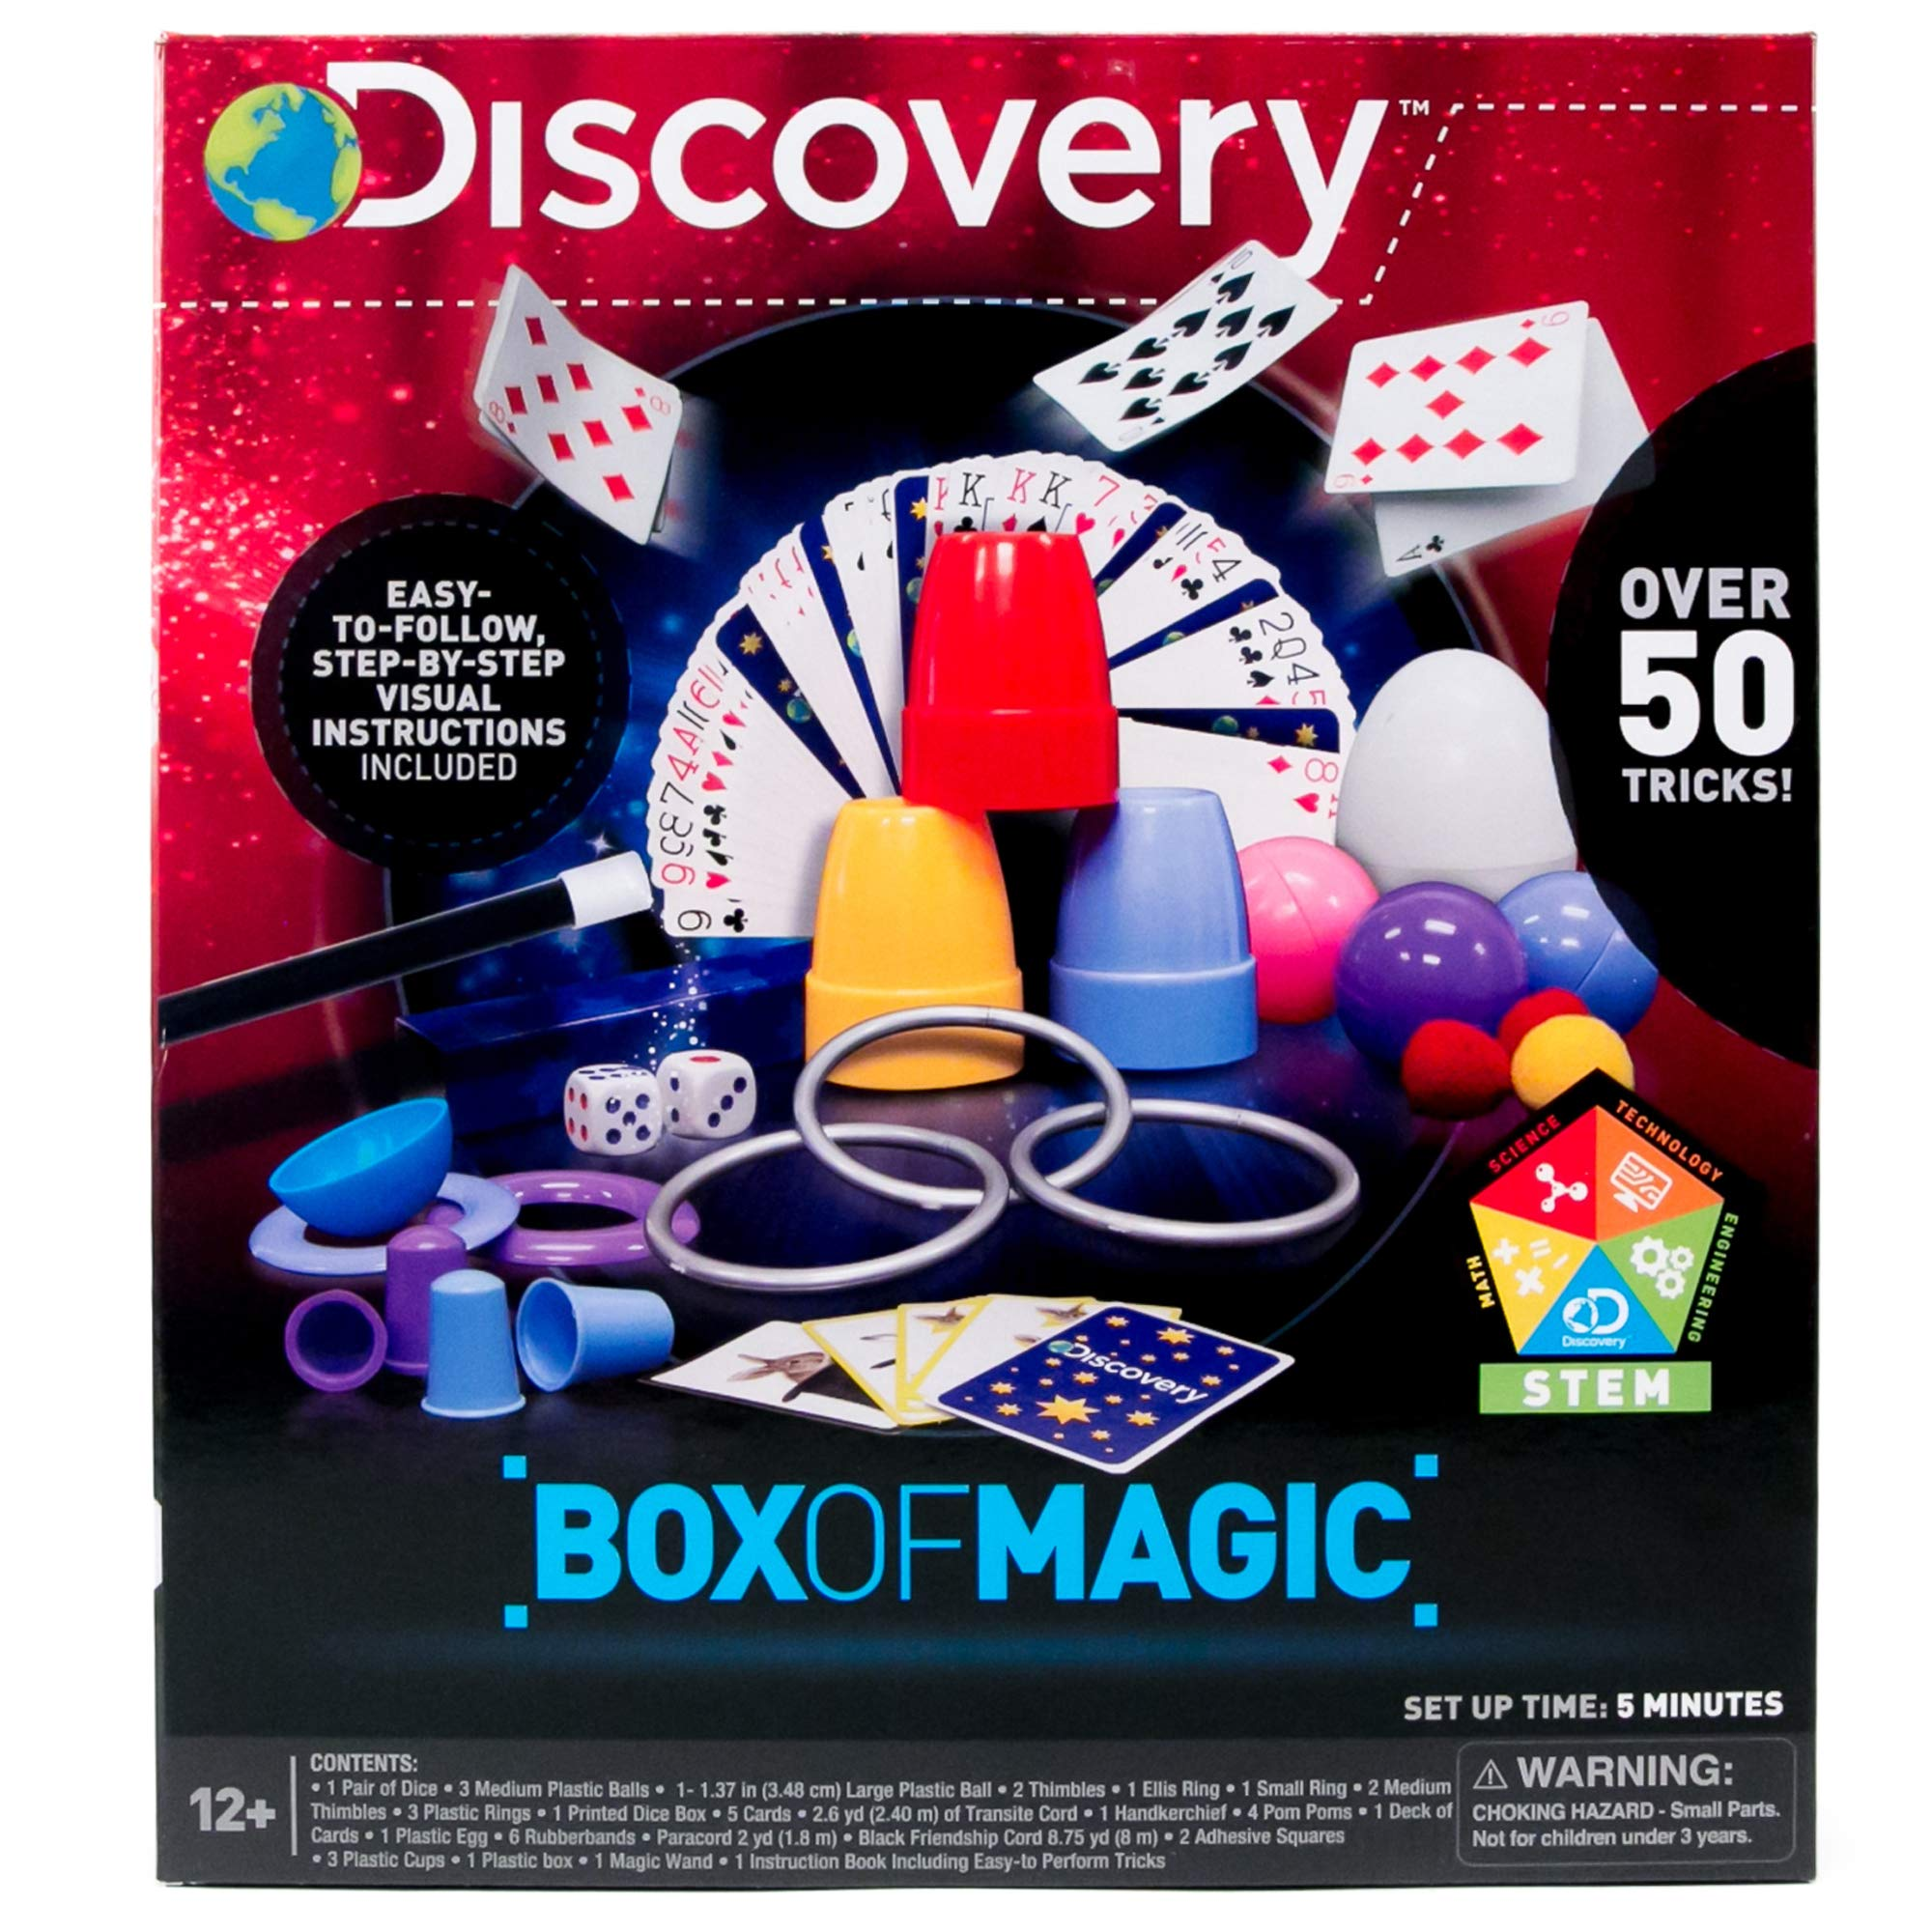 Discovery Box of Magic by Horizon Group USA, Great Stem Science Experiments, Over 50 Magic Tricks & Optical Illusions, Magic Wand & Instructions Included by Discovery